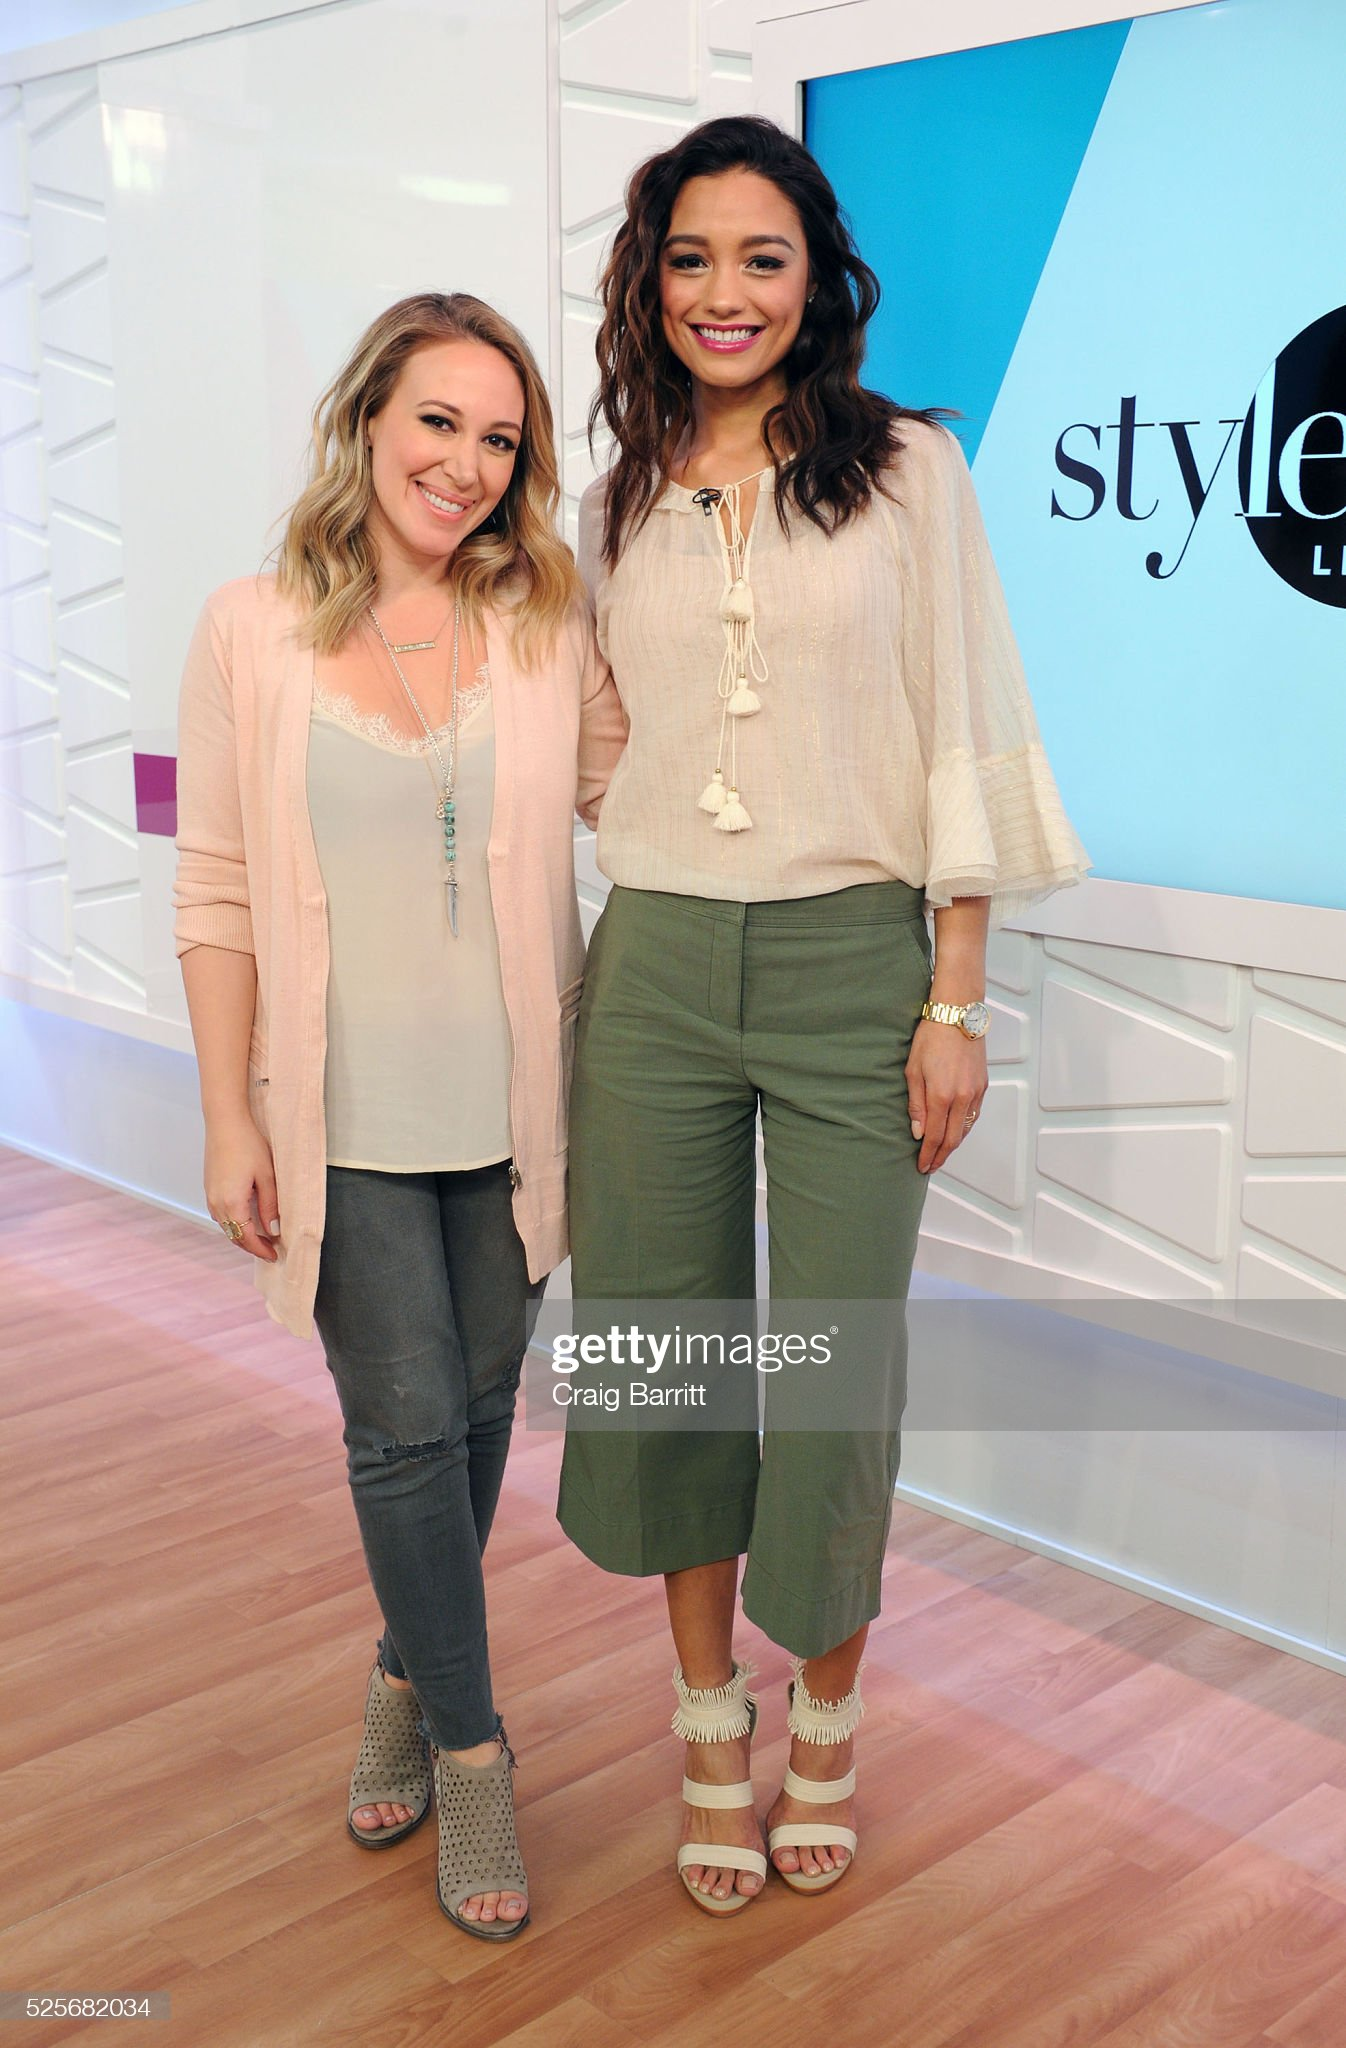 ¿Cuánto mide Rachel Smith? - Real height Haylie-duff-and-rachel-smith-on-the-set-of-amazons-style-code-live-on-picture-id525682034?s=2048x2048